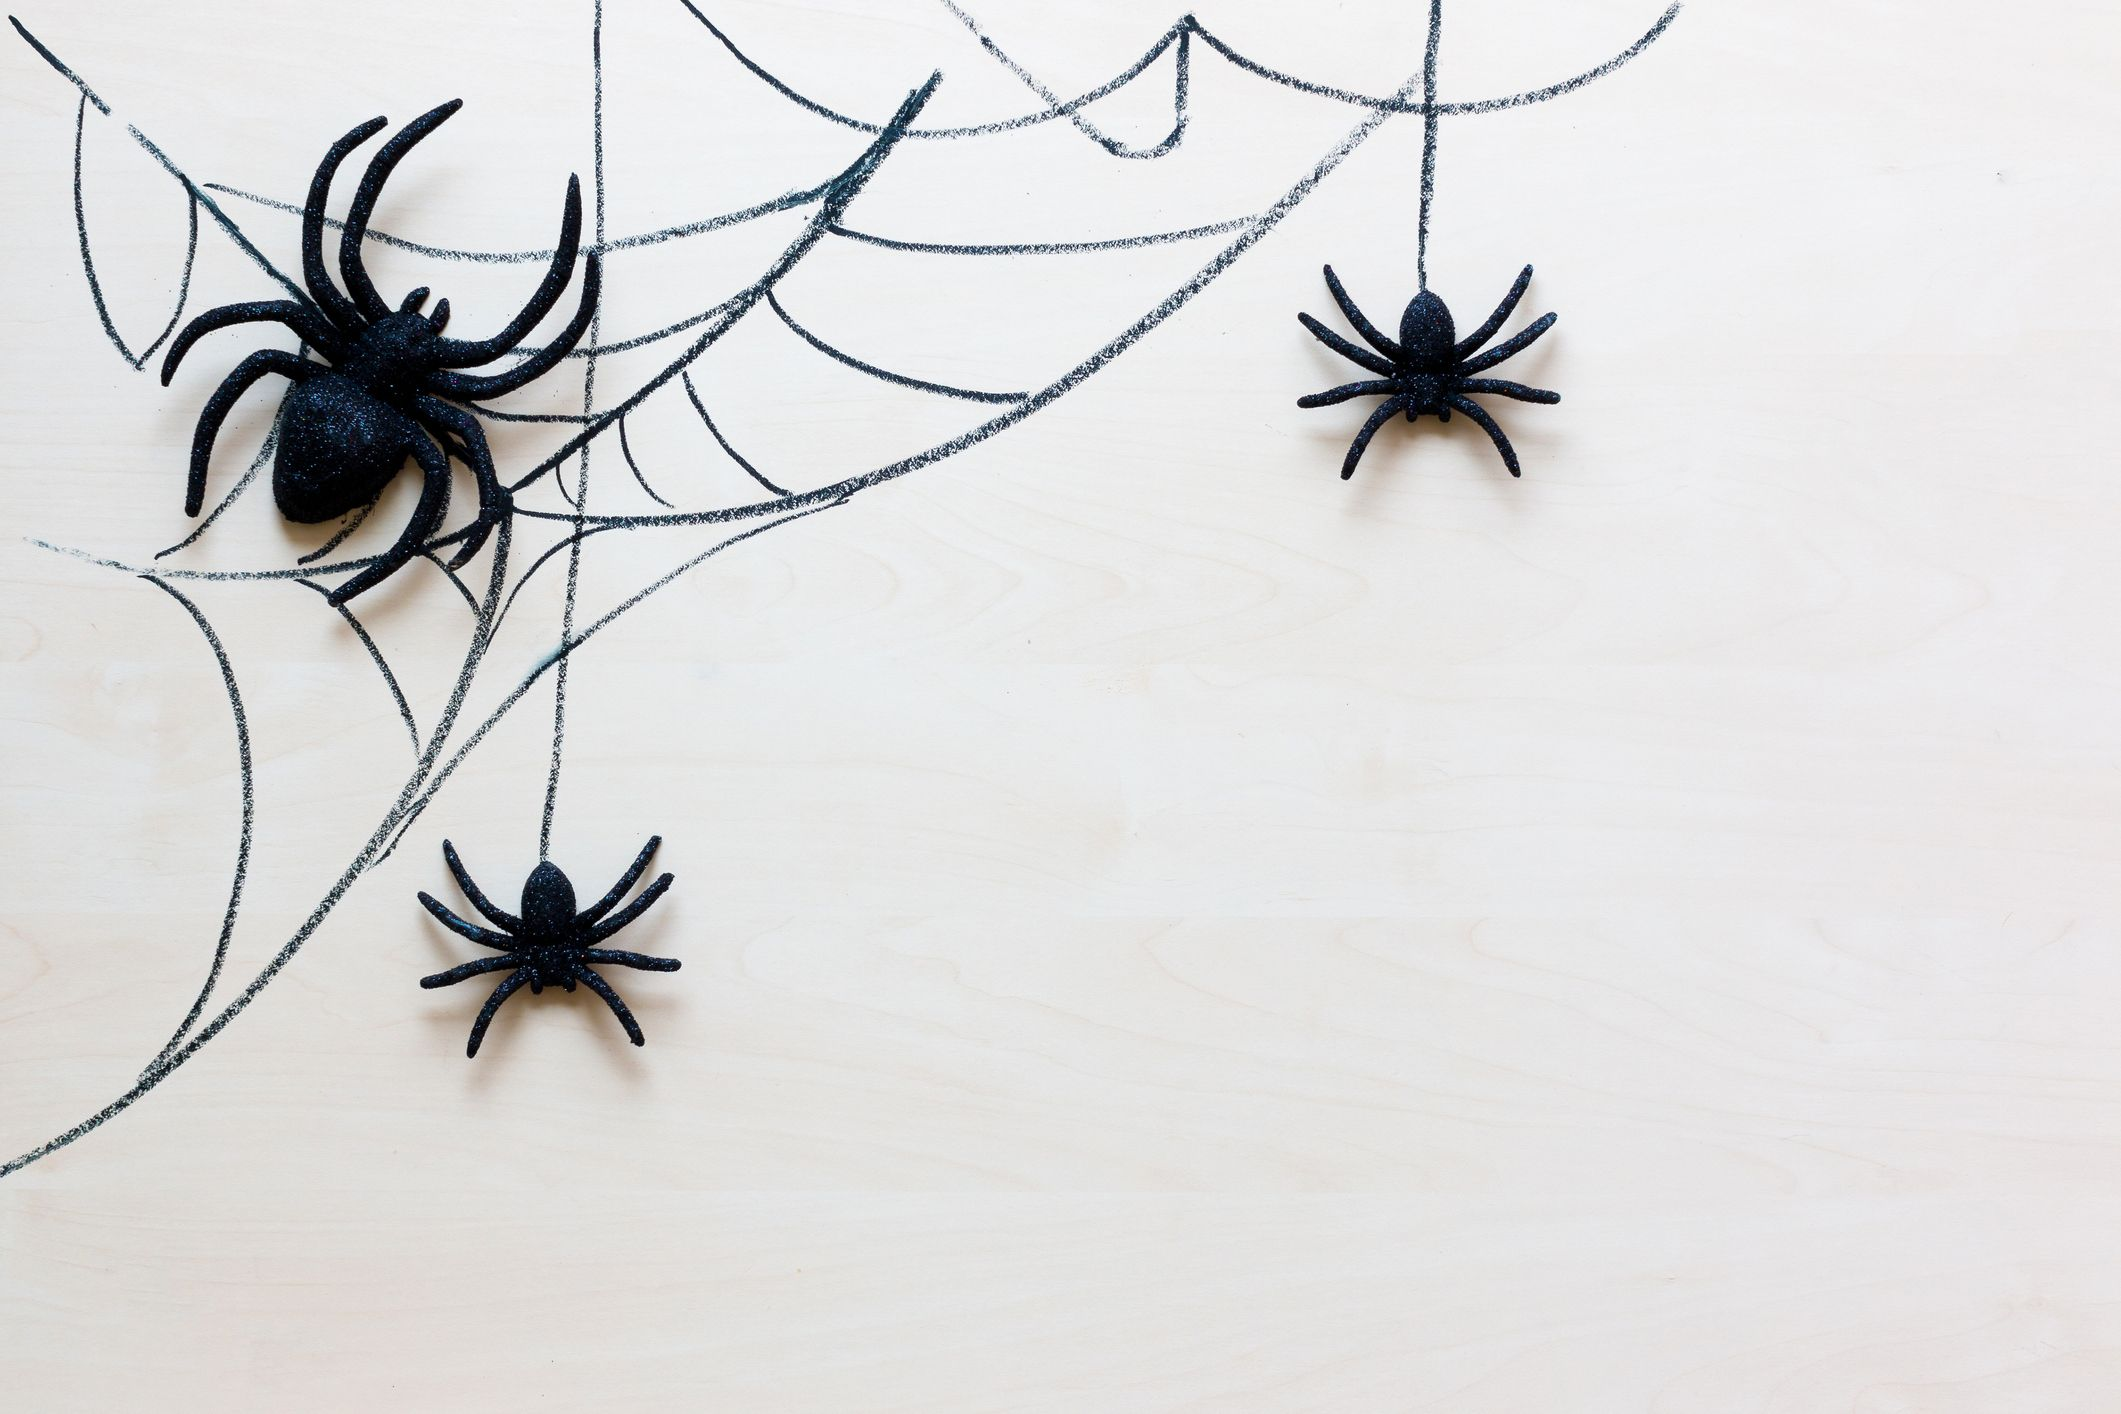 How To Get Rid Of Spiders 13 Natural Ways From Pest Experts